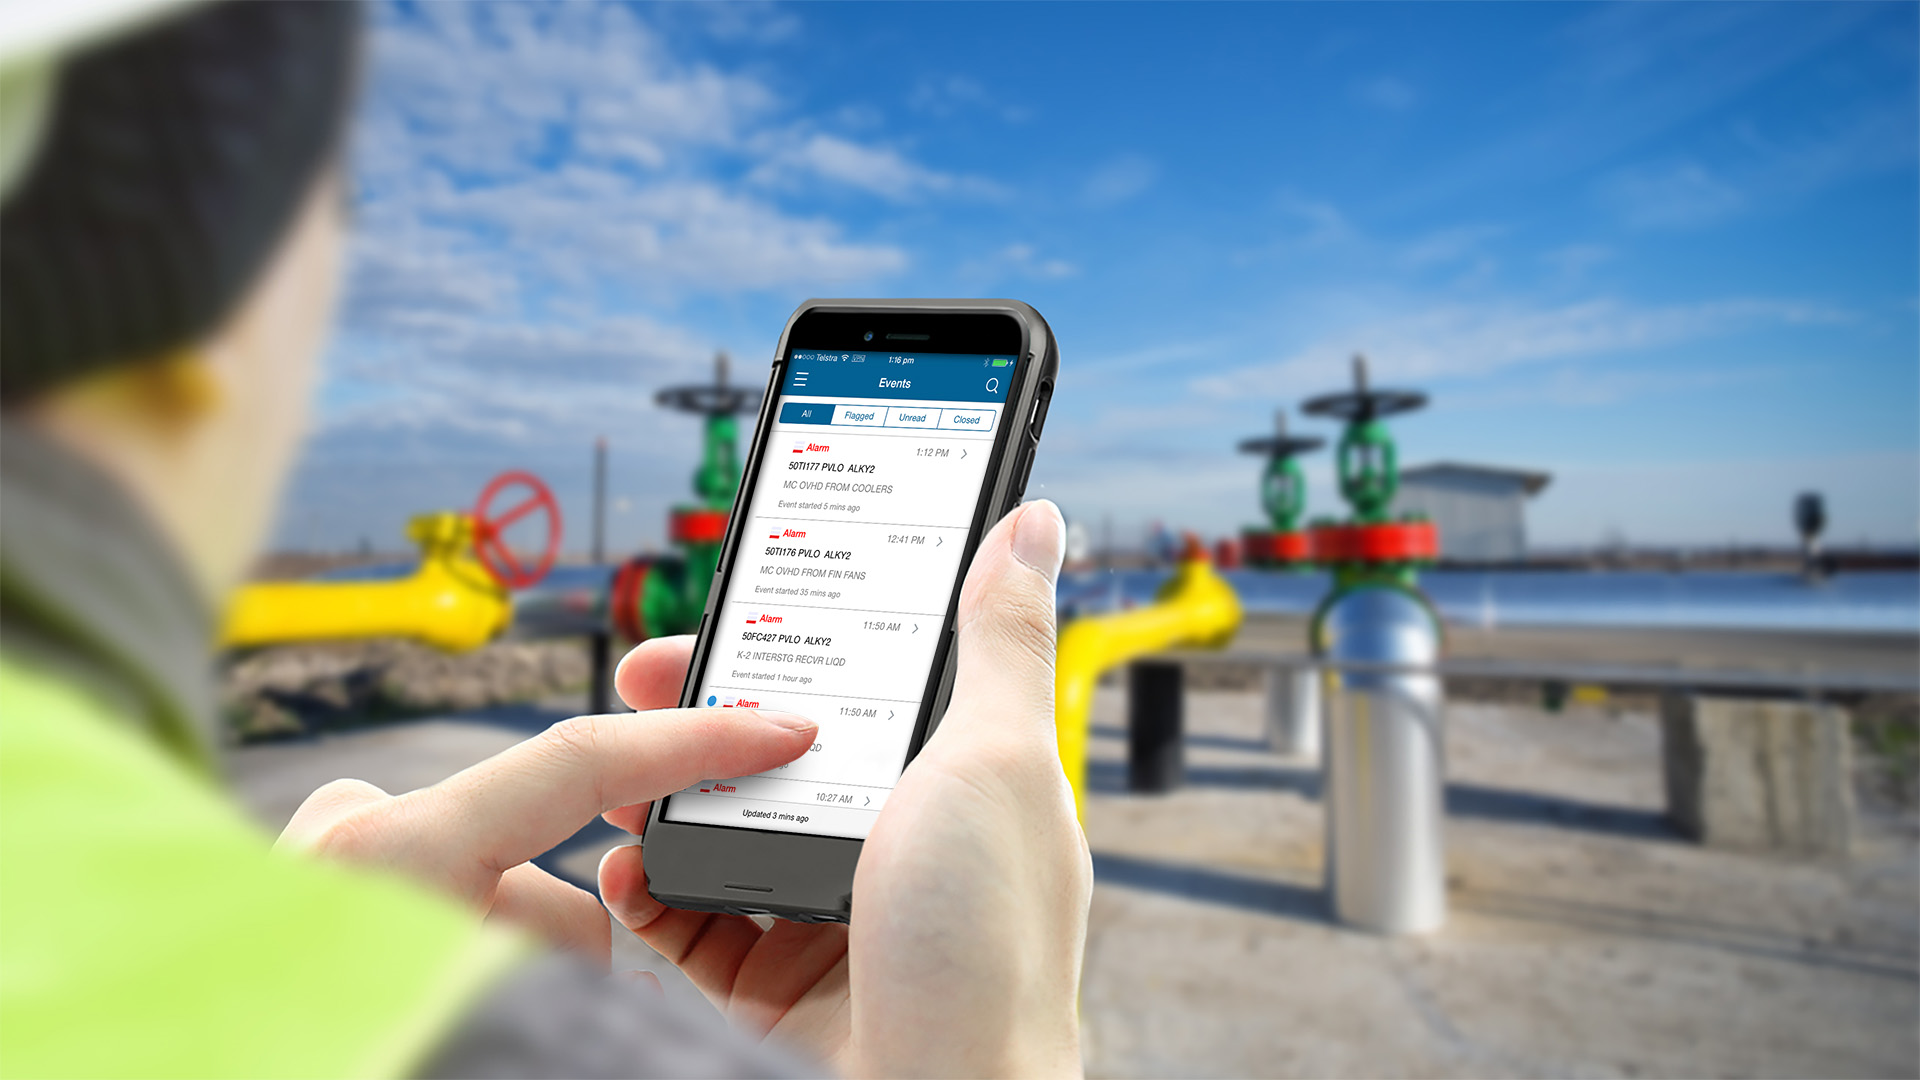 Honeywell Pulse is a new mobile app providing plant managers immediate notifications as well as real-time plant performance data and analytics direct to their smartphones.